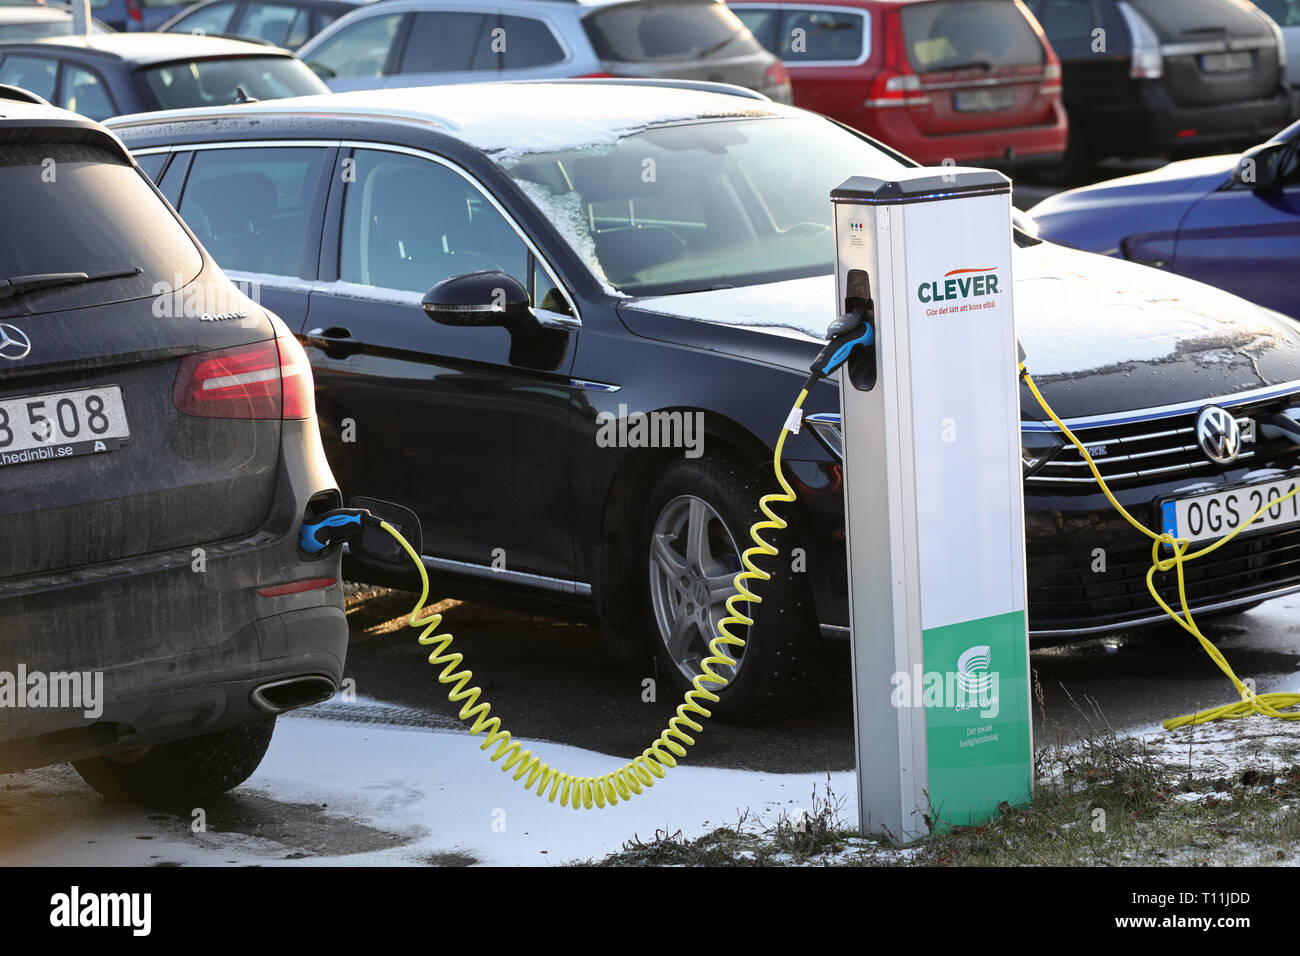 Charging station for electric cars. Linköping, Sweden. Jeppe Gustafsson Stock Photo